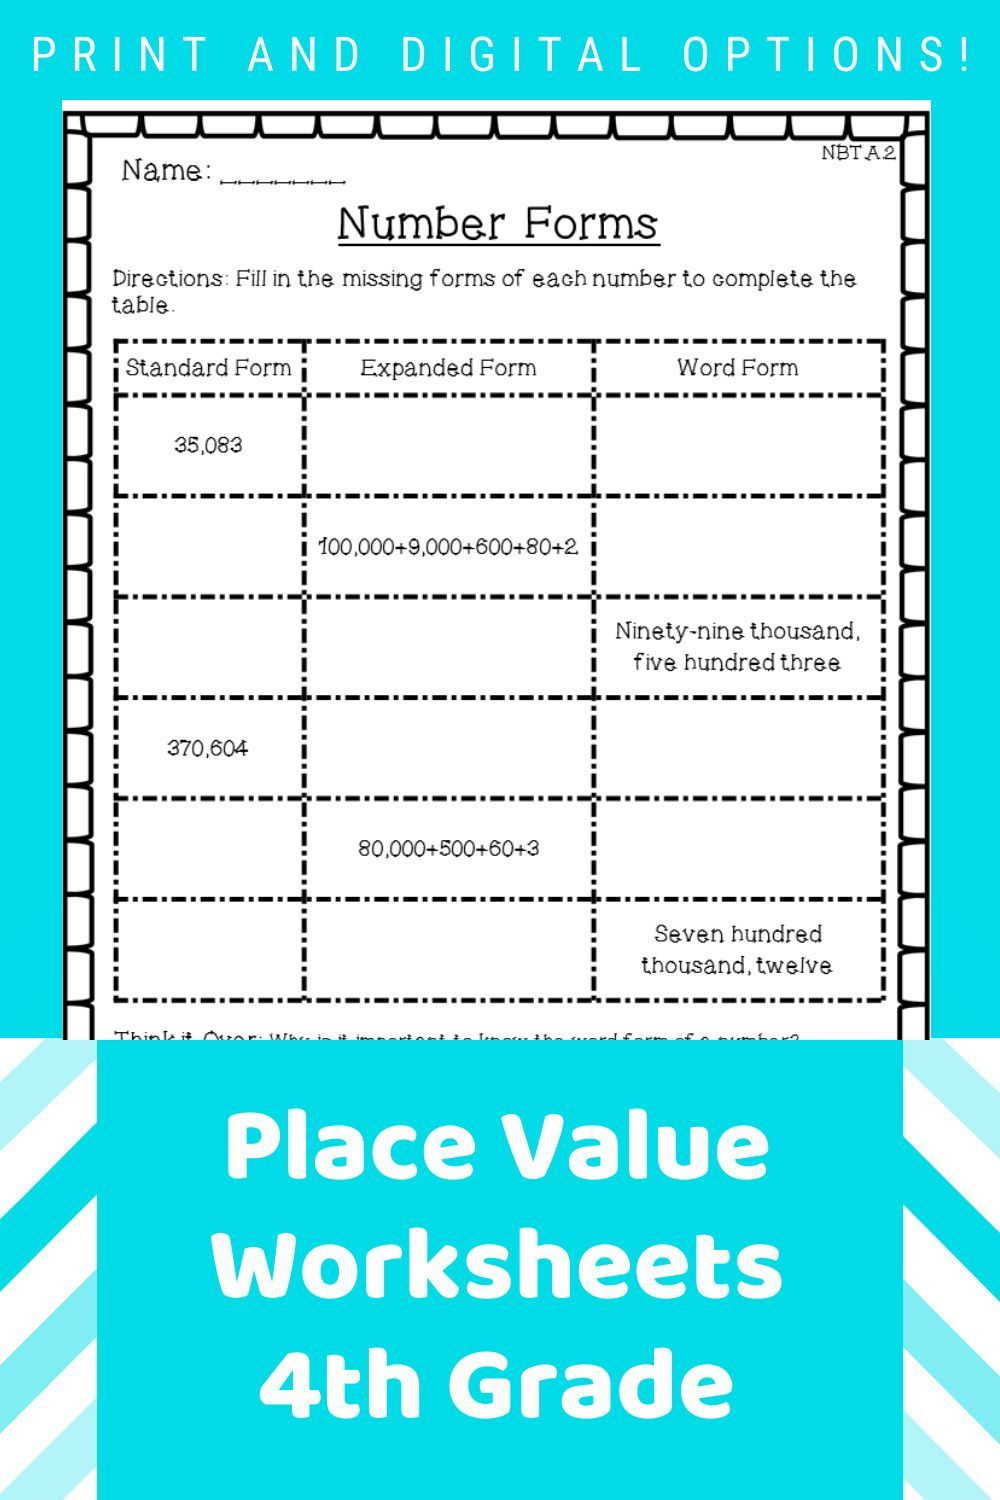 Place Value Worksheets 4th Grade Place Value Worksheets Place Values Fourth Grade Math